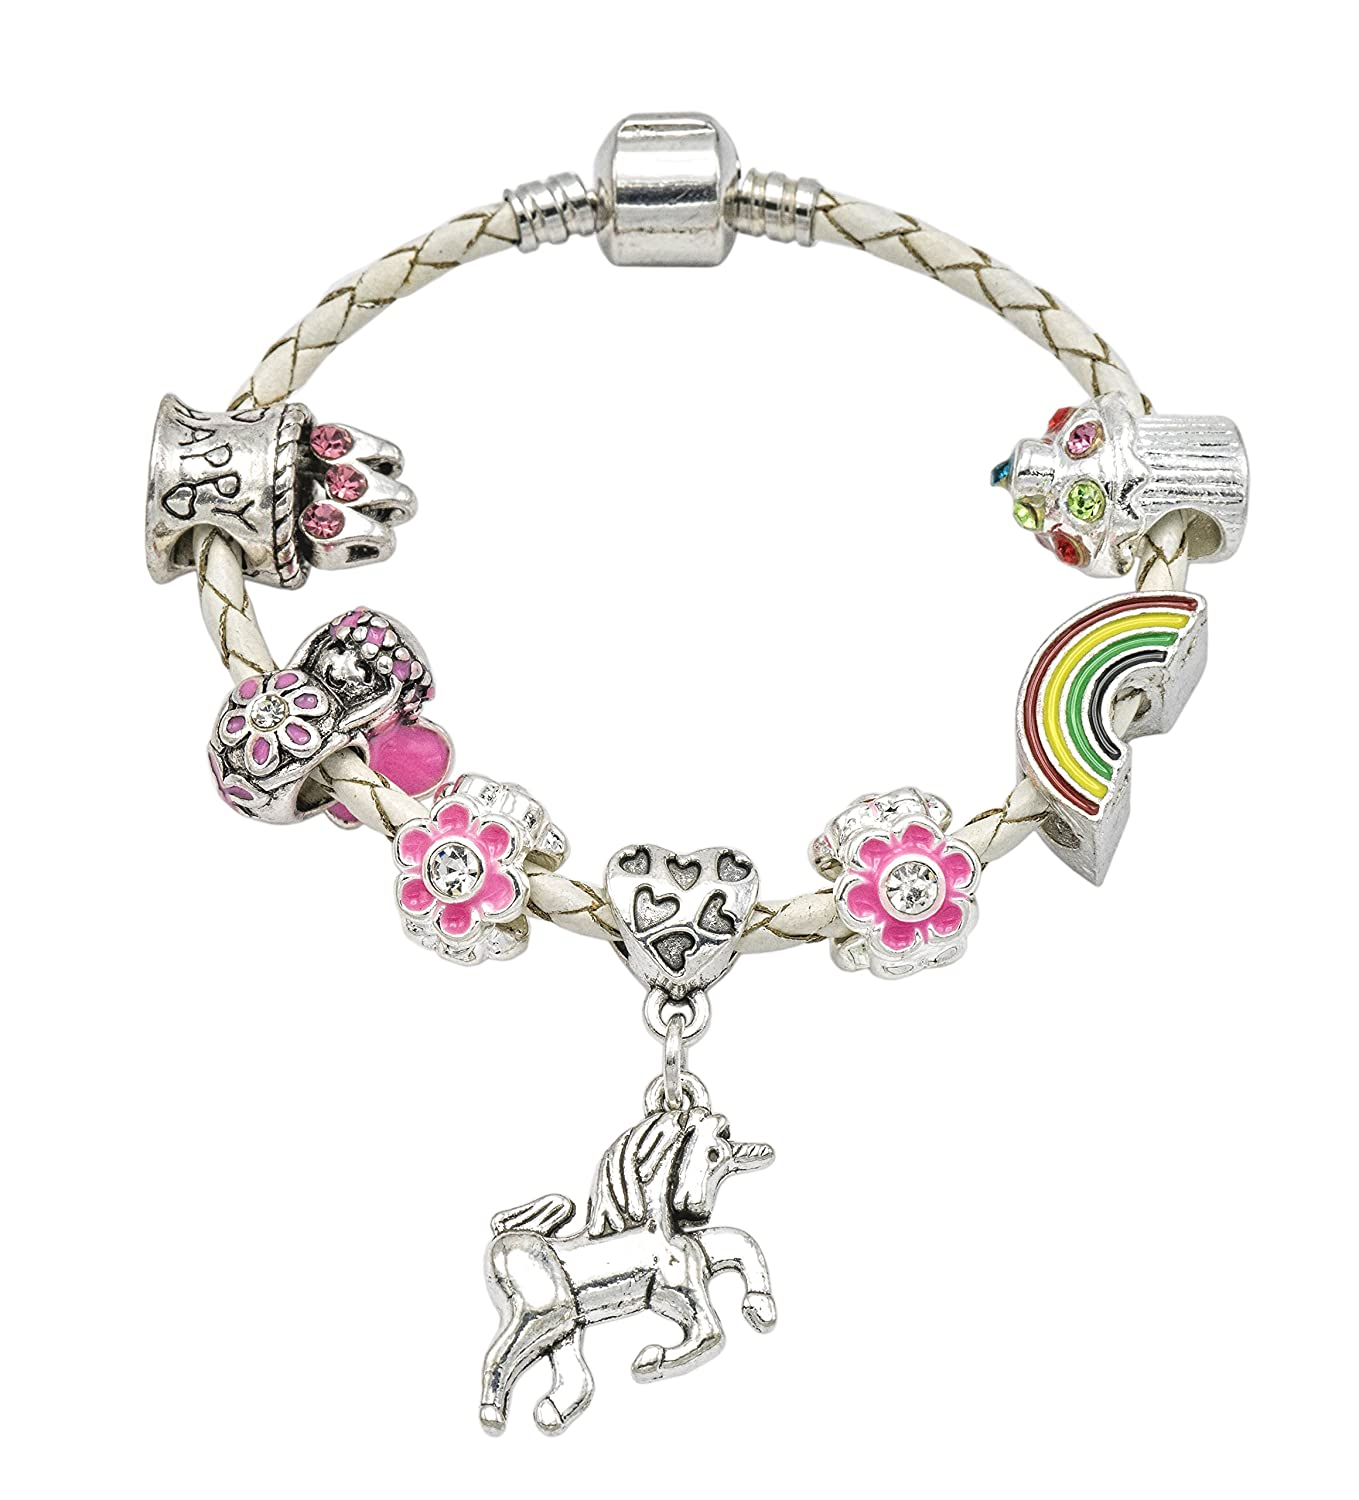 Girl's Cream Leather Unicorn Birthday Charm Bracelet with Gift Box and Unicorn Insert Jewellery Hut BRBIRTHDAYUNICORNCREAM